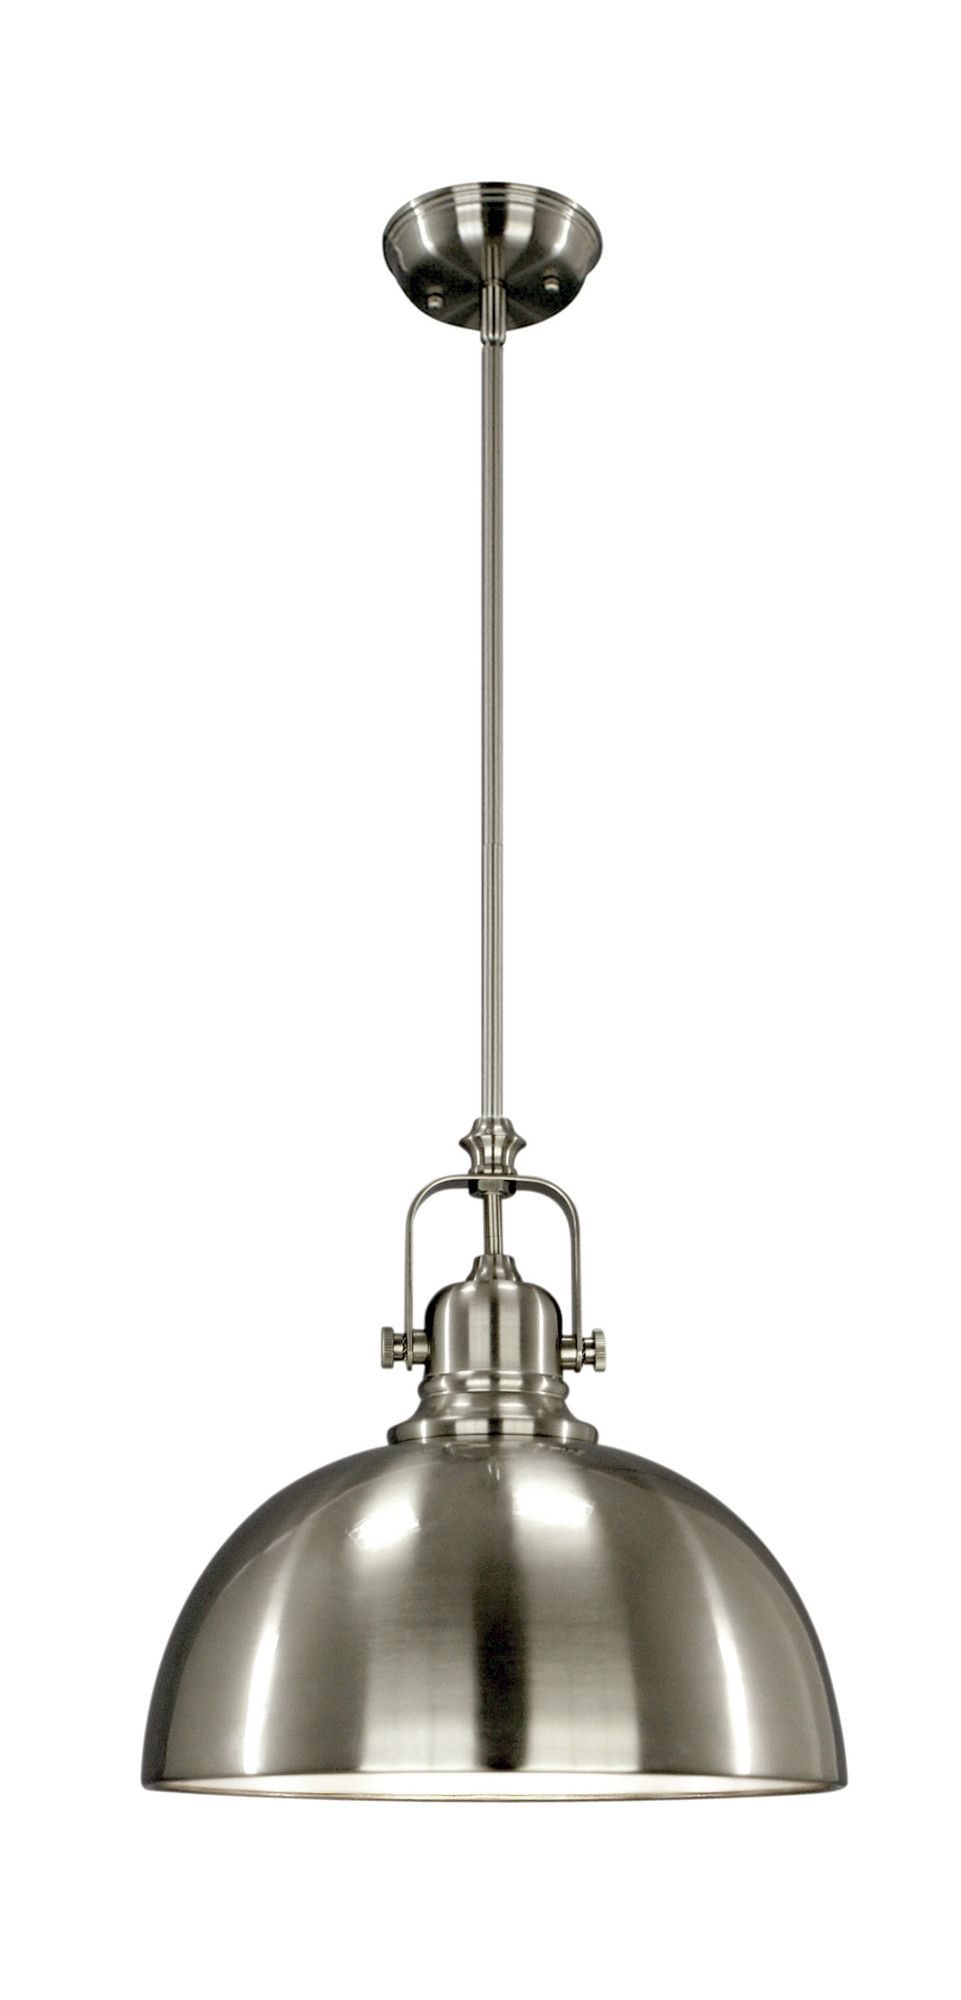 Industrial pendant light fixture in brushed nickel or bronze $67